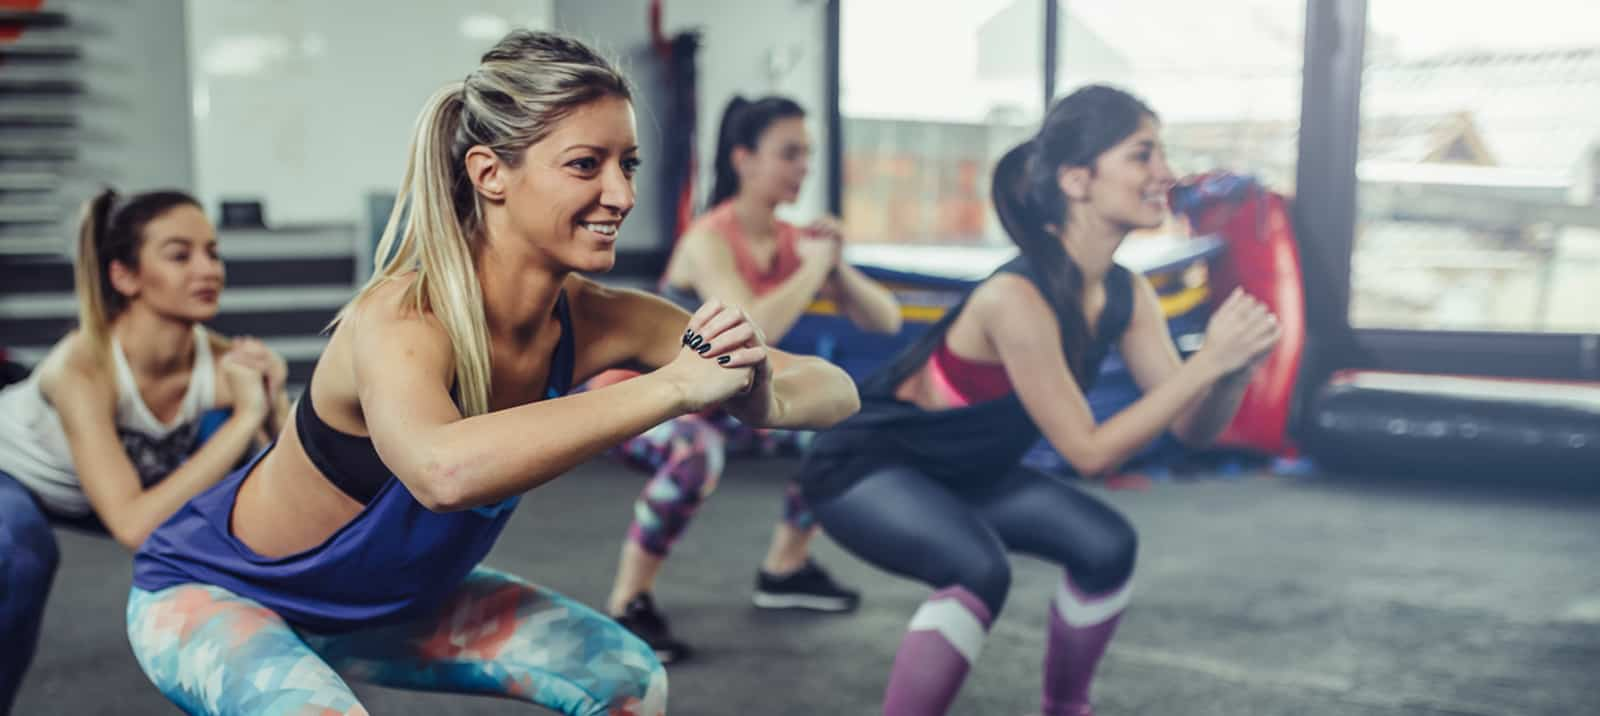 Planning Your Workouts For Weight Loss